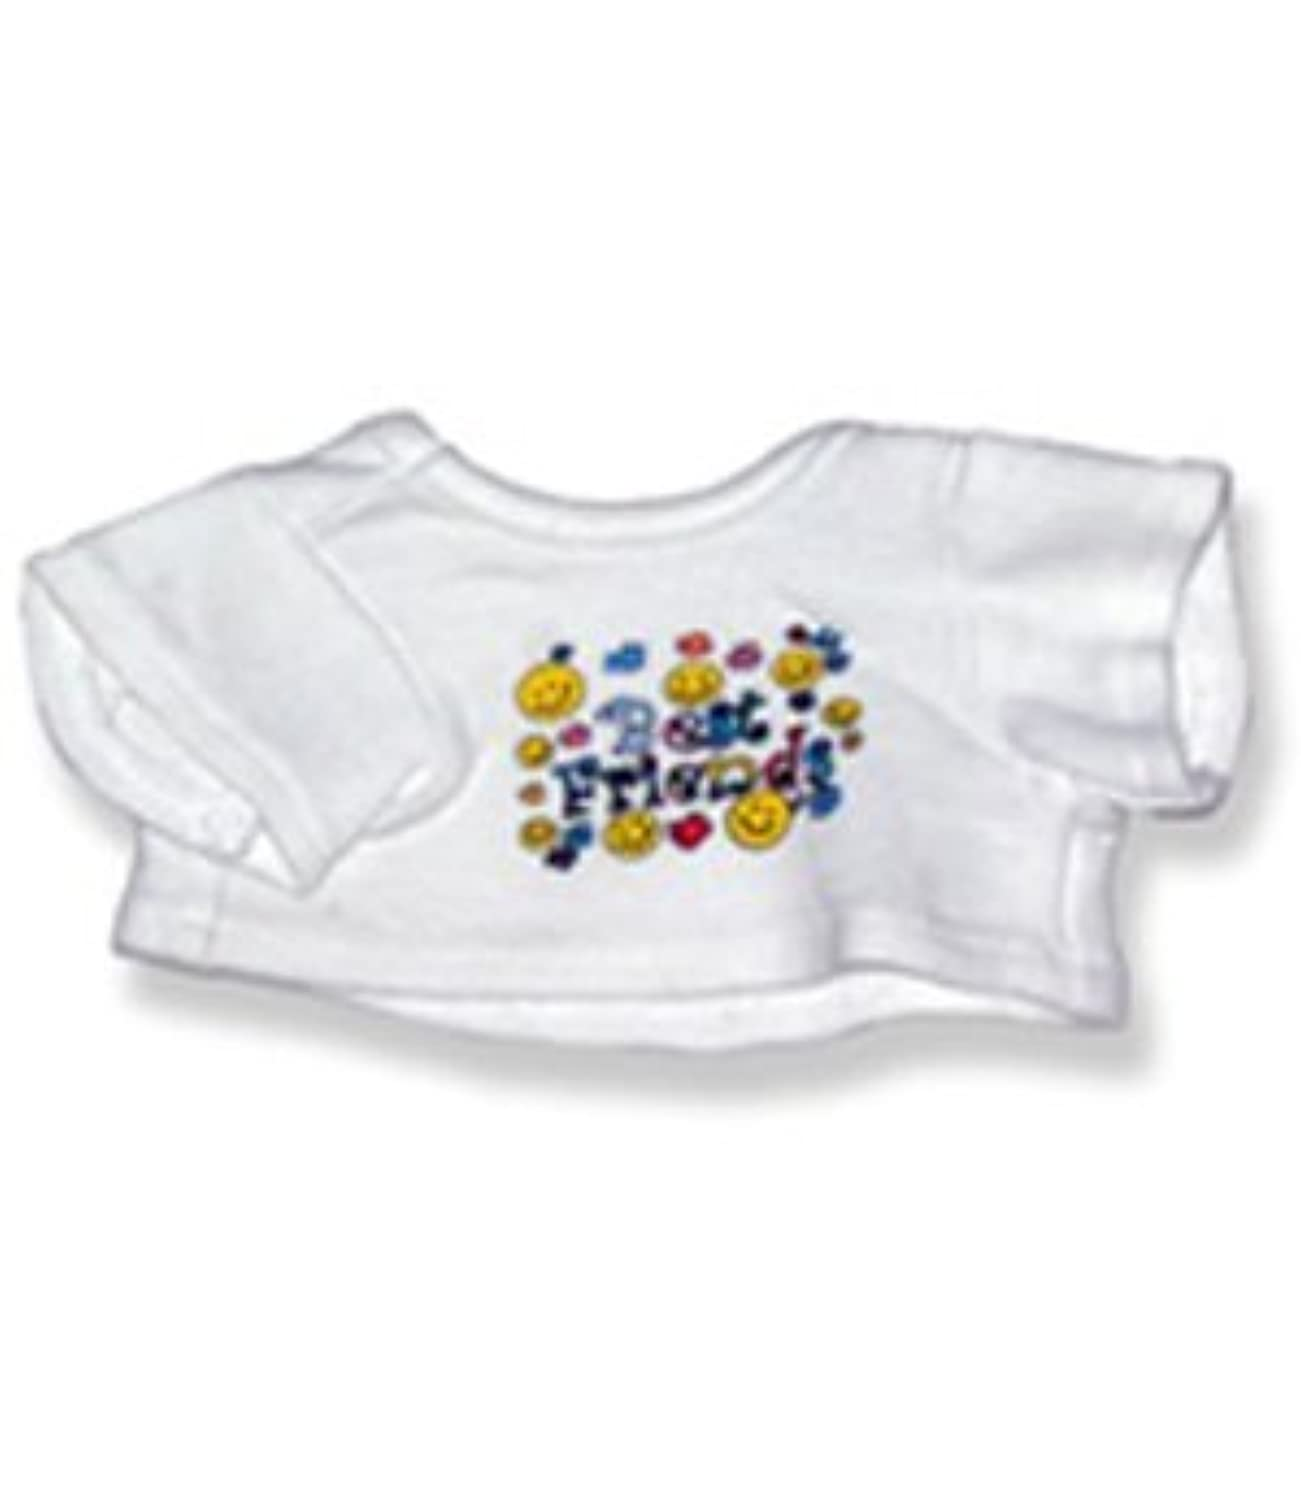 Best Friends T-Shirt 8 inch - 2035 Fits 8 - 10 bears, includes Build a Bear, The Bear Mill, and Stuff your own Animals. by The Bear Mill